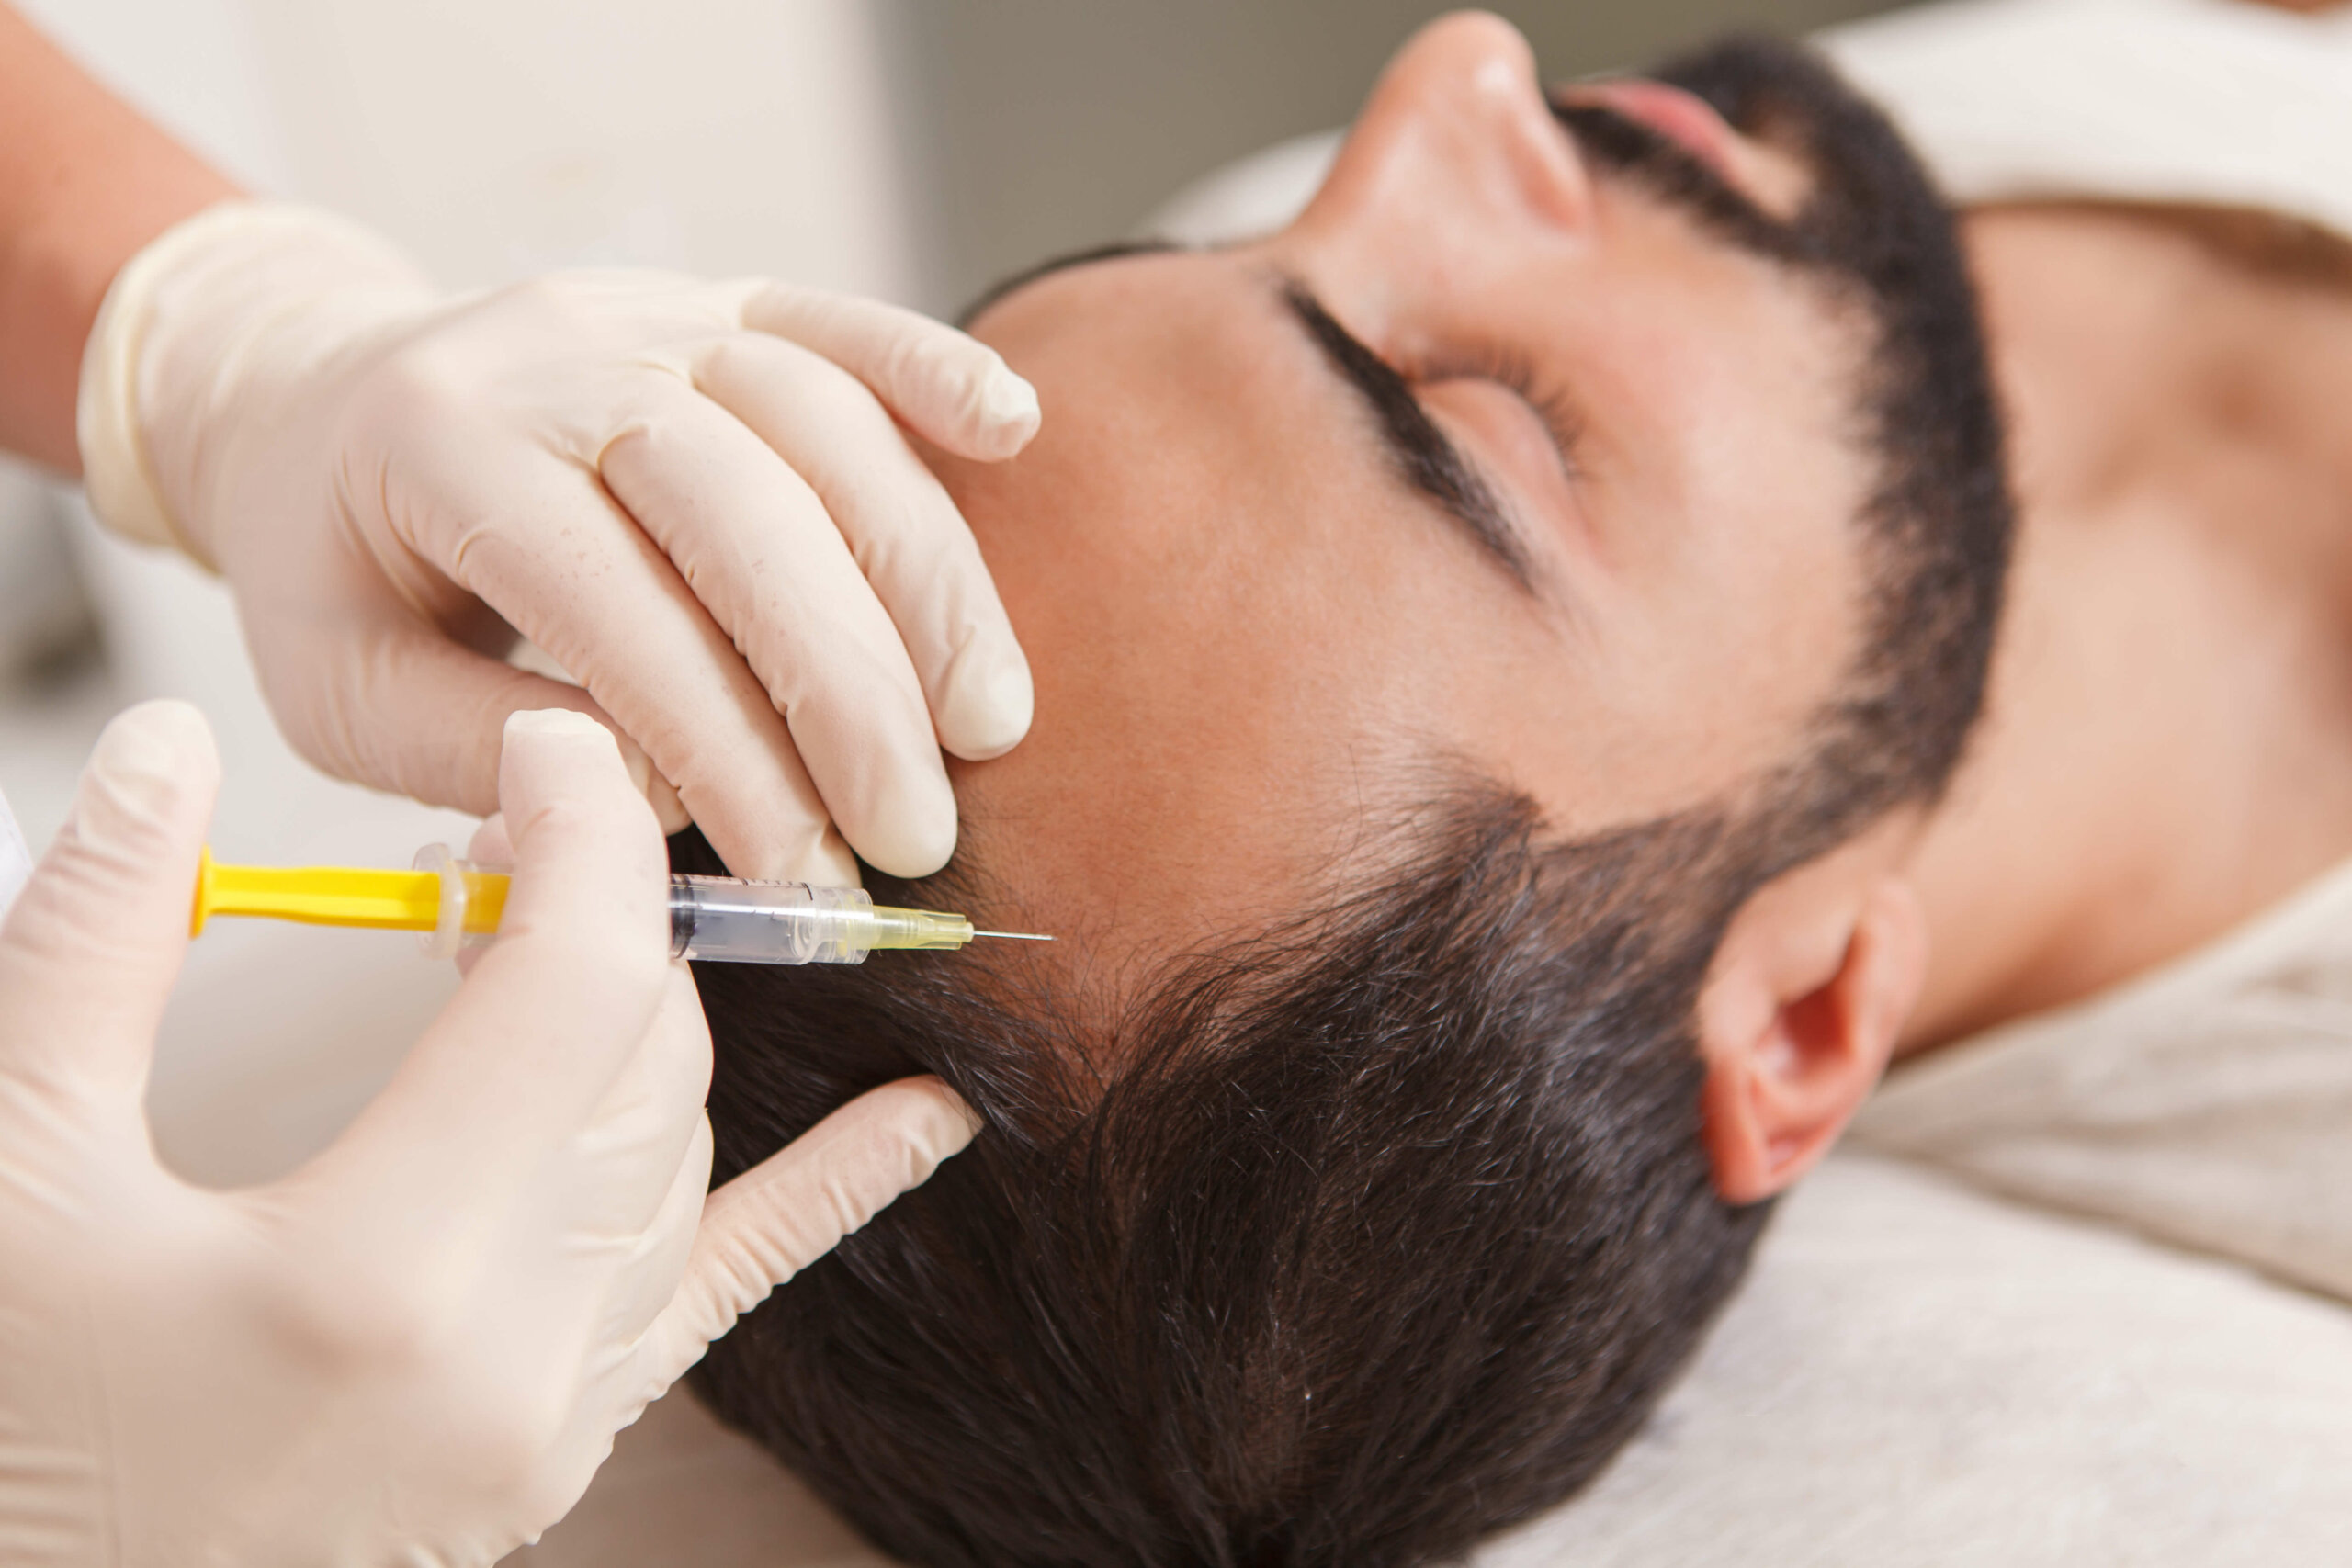 A close-up of a reclined man's head, whose scalp is being administered a PRP injection.